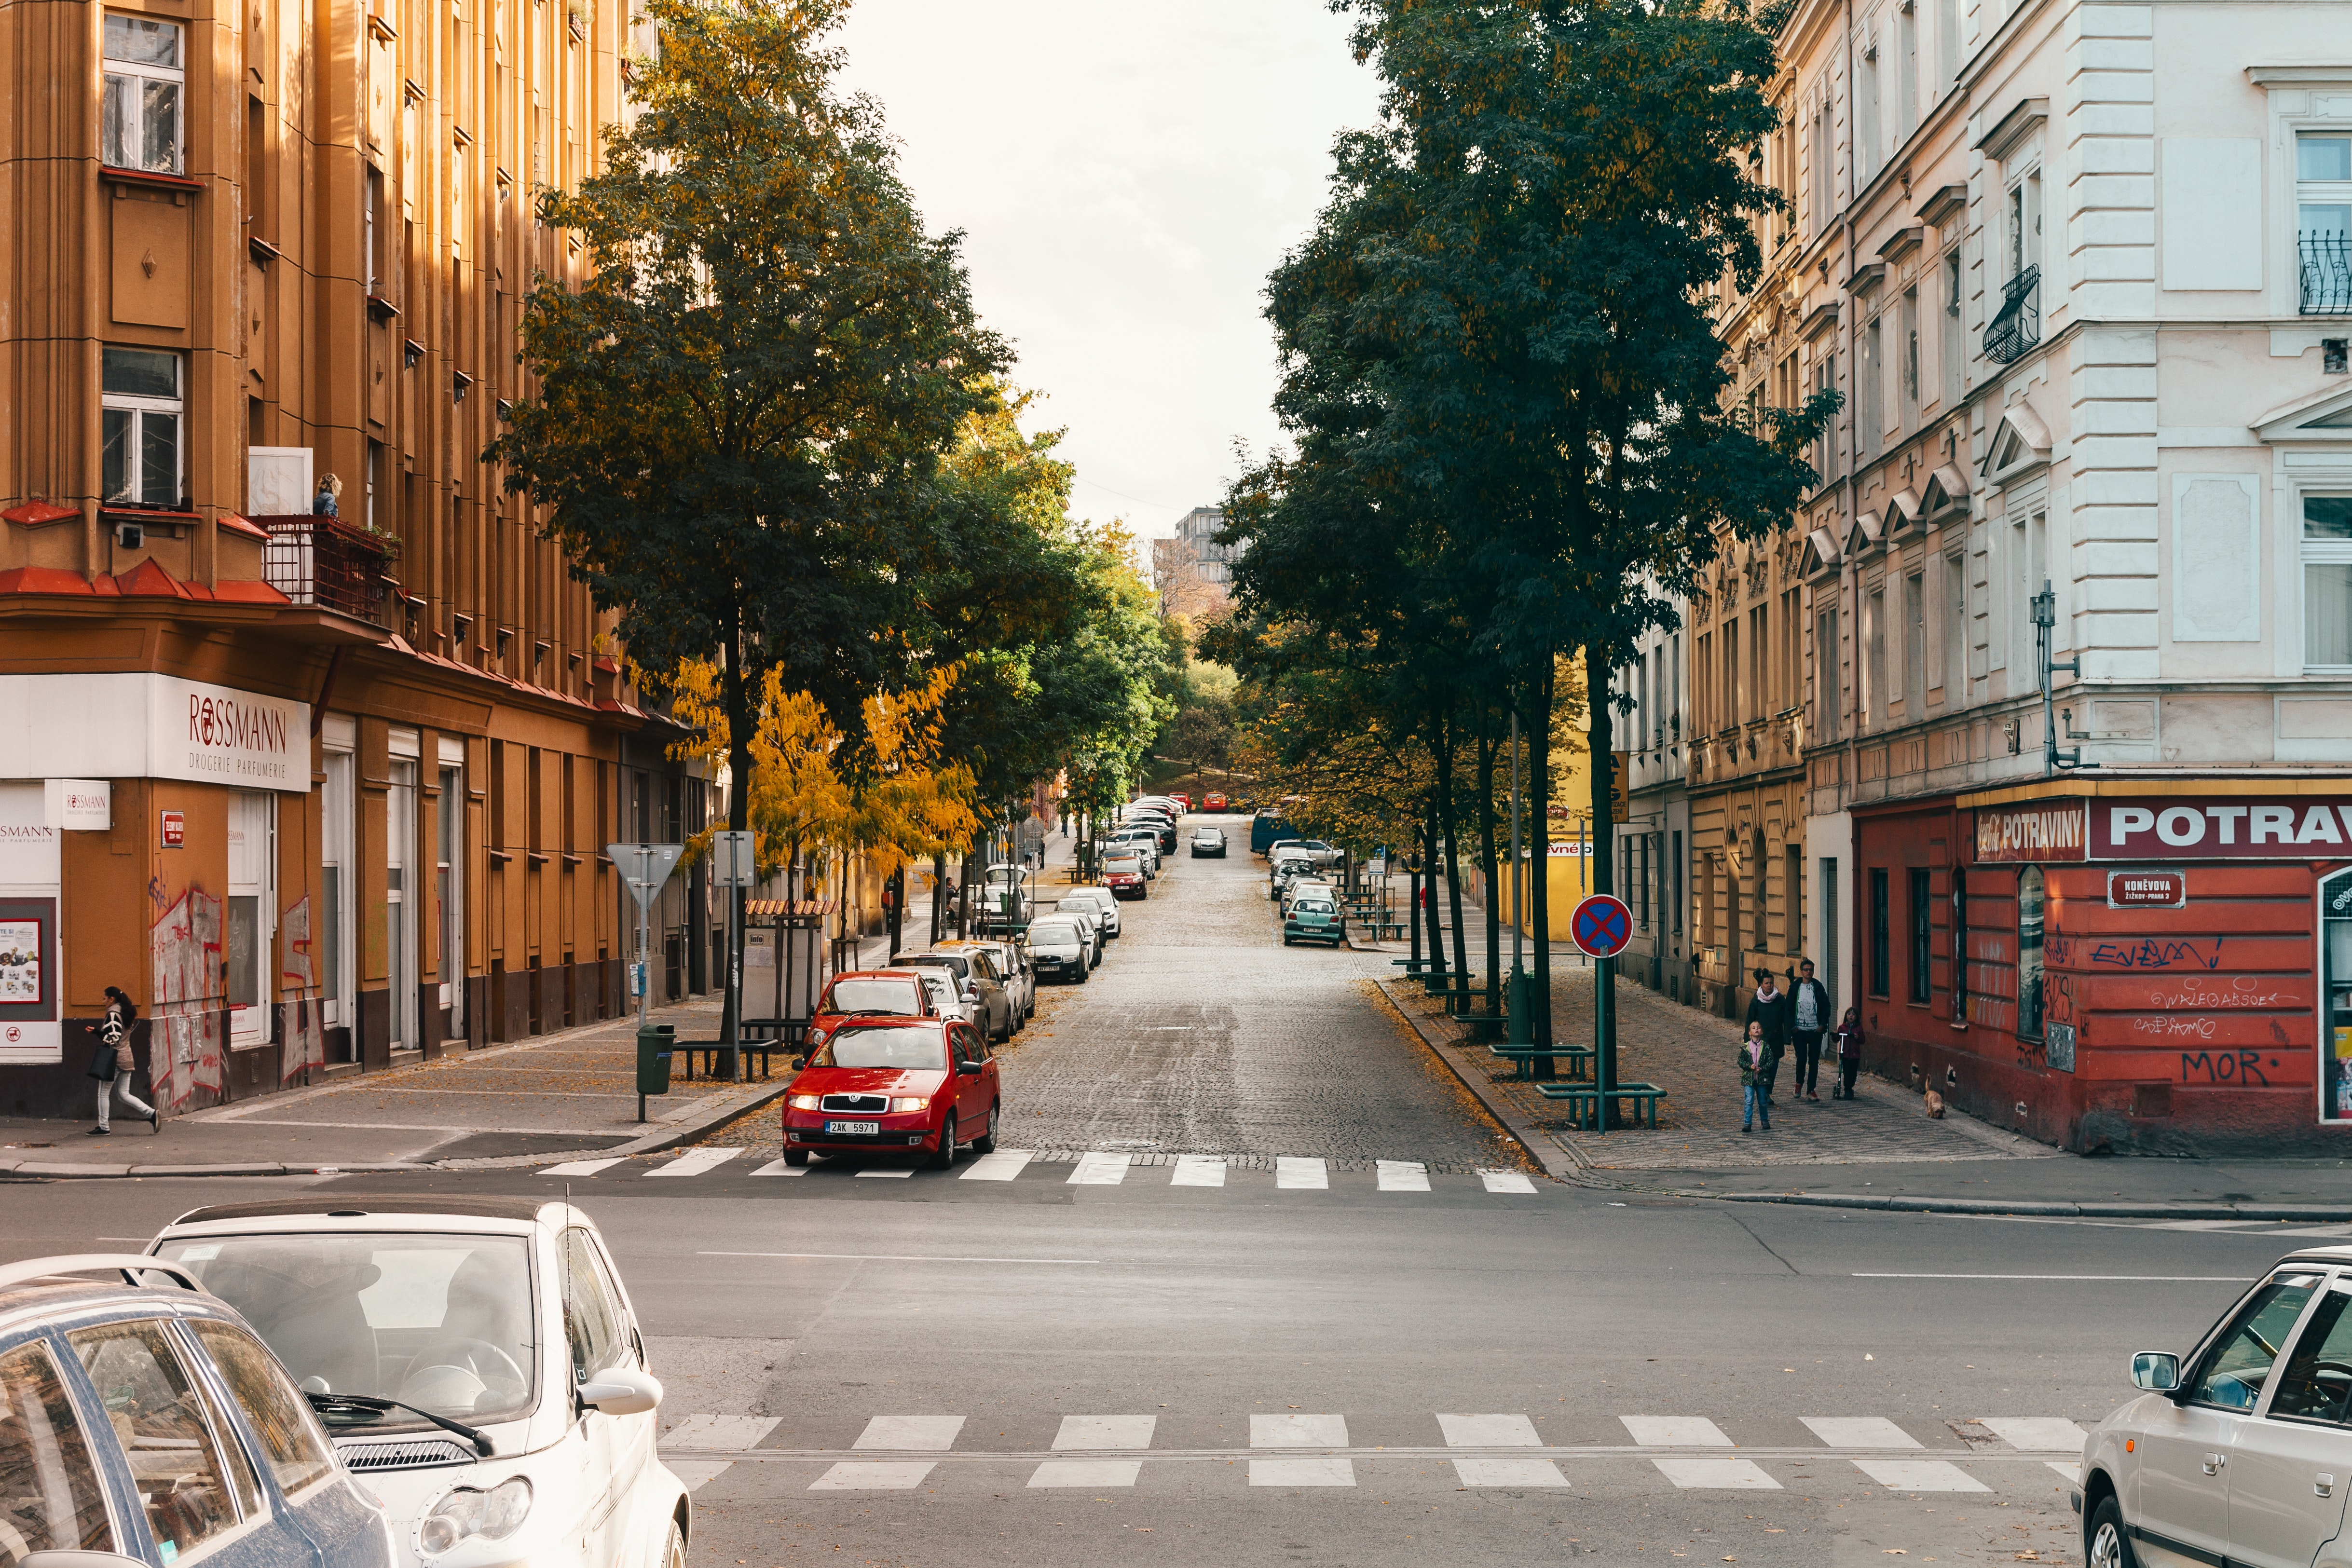 Photo of Roadway Cross Between Buildings, Intersection, Vehicles, Urban, Trees, HQ Photo